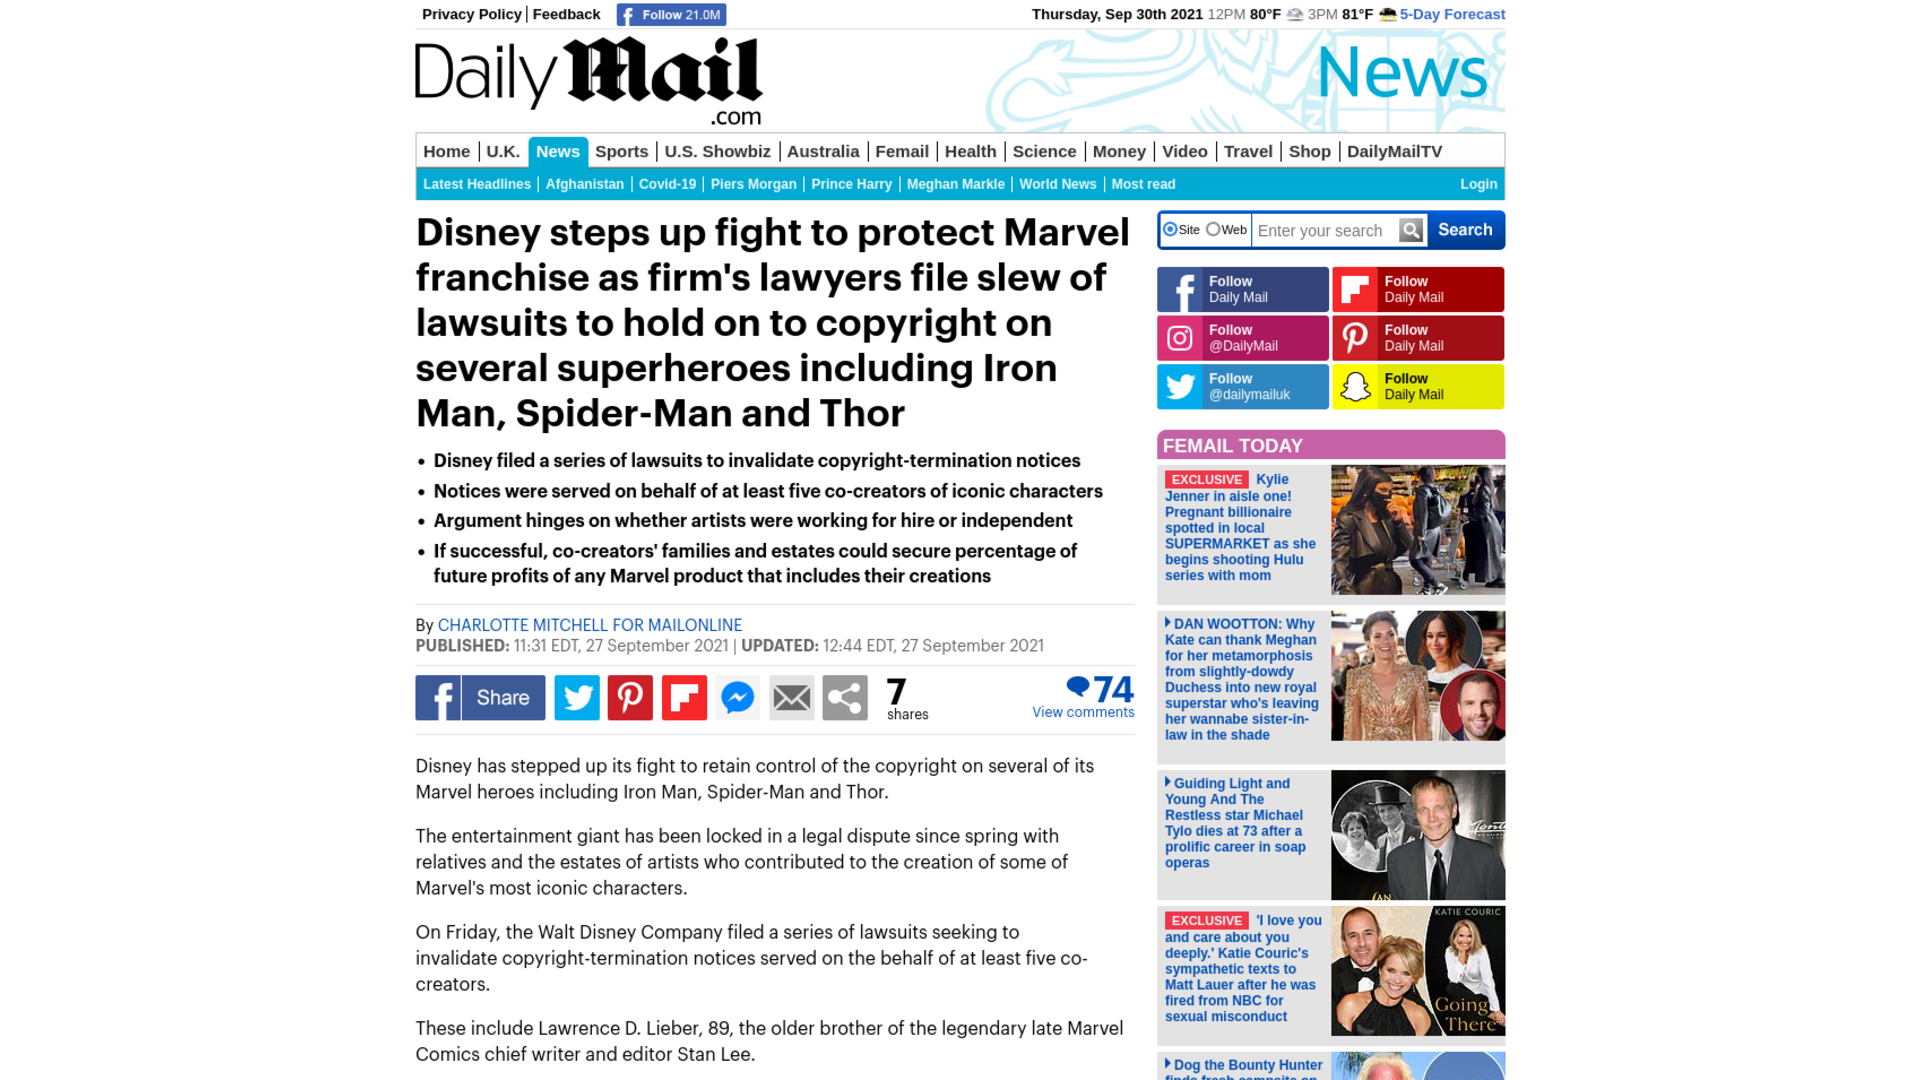 Fairness Rocks News Disney steps up fight to protect Marvel franchise as firm's lawyers file slew of lawsuits to hold on to copyright on several superheroes including Iron Man, Spider-Man and Thor